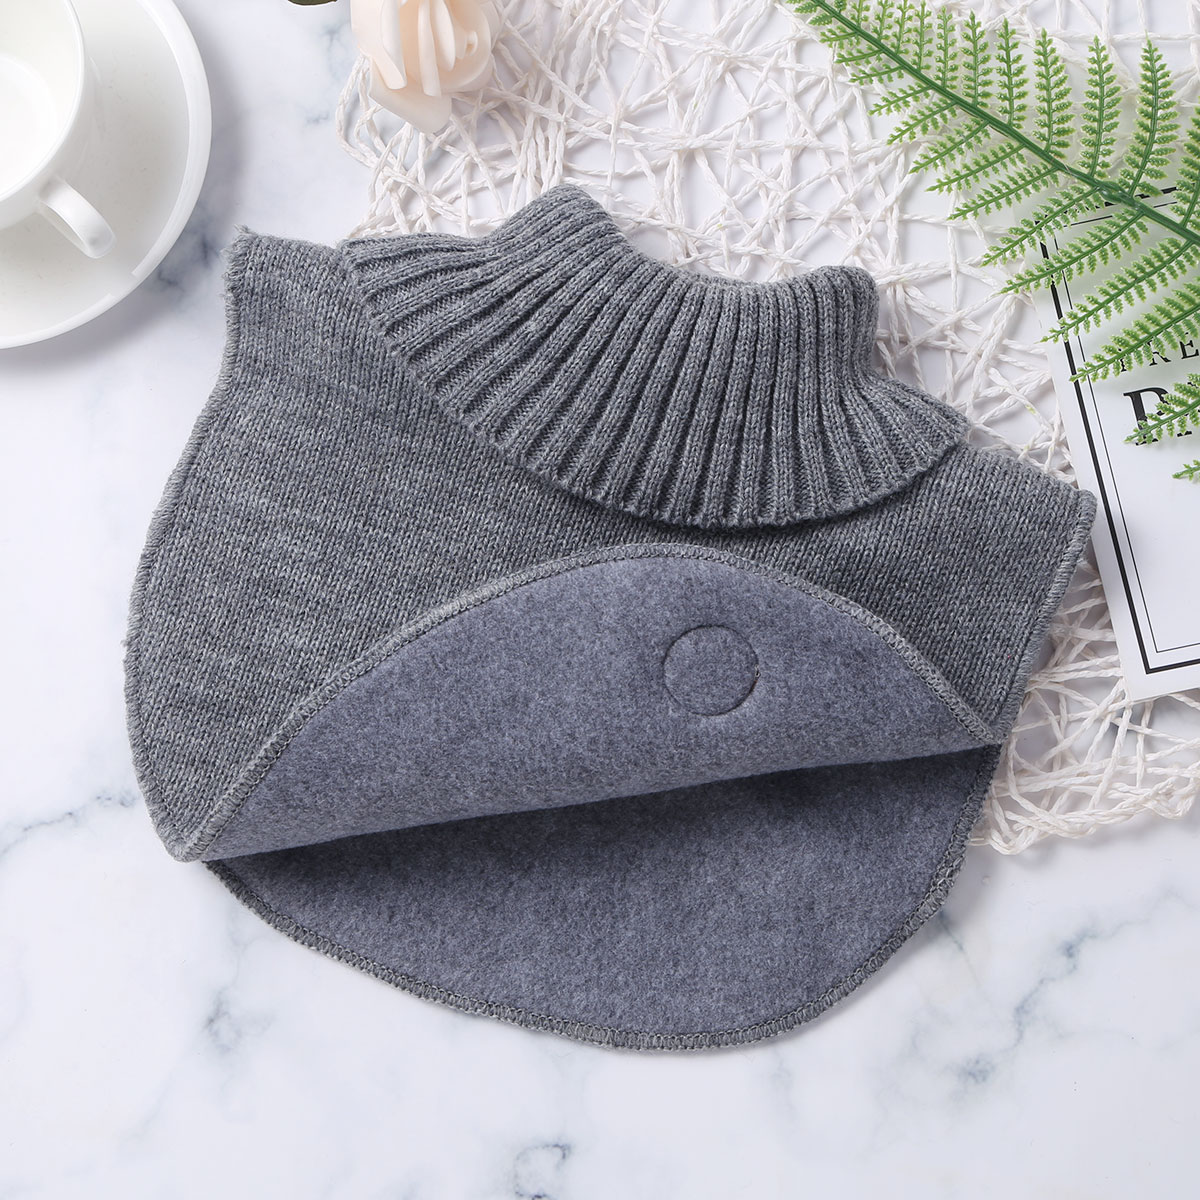 Latest Collection Of Baby Childrens Neck Gaiter Scarf Fake Collar Kraagjes Dames Baby Turtleneck Warmer Sweater Collar Neck Cover Lightweight Collar Boy's Tie Apparel Accessories